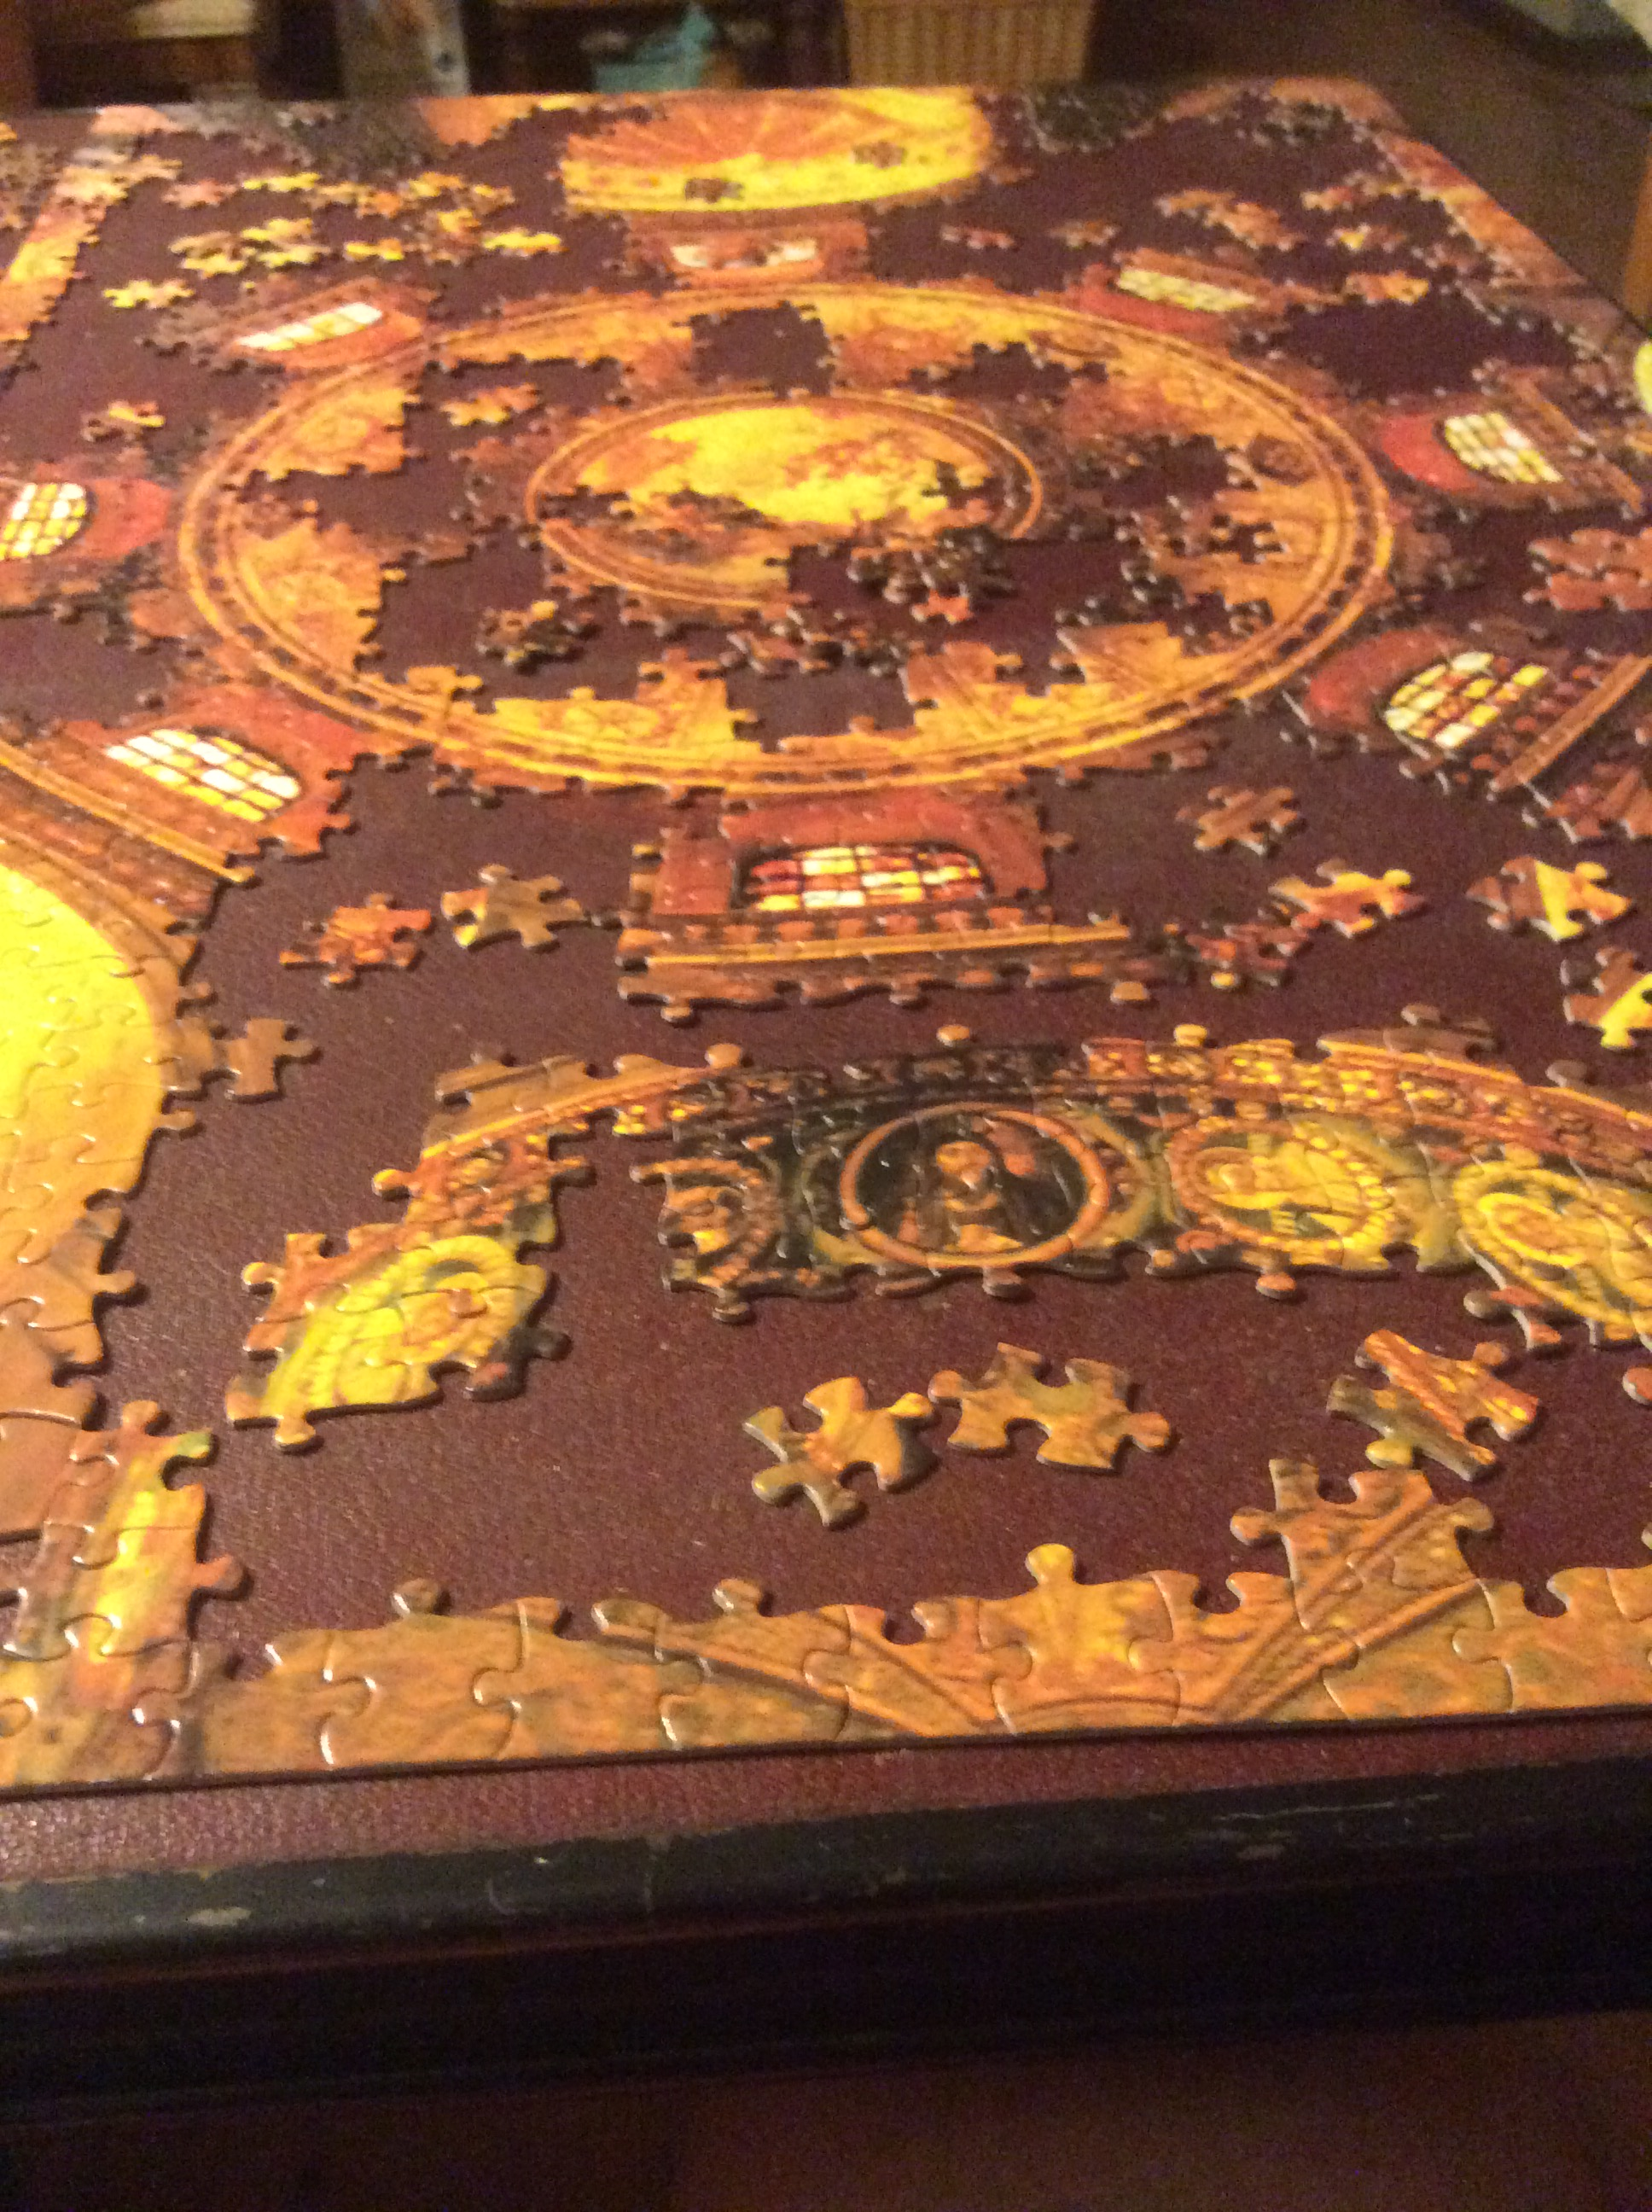 Cathedral dome jigsaw puzzle.